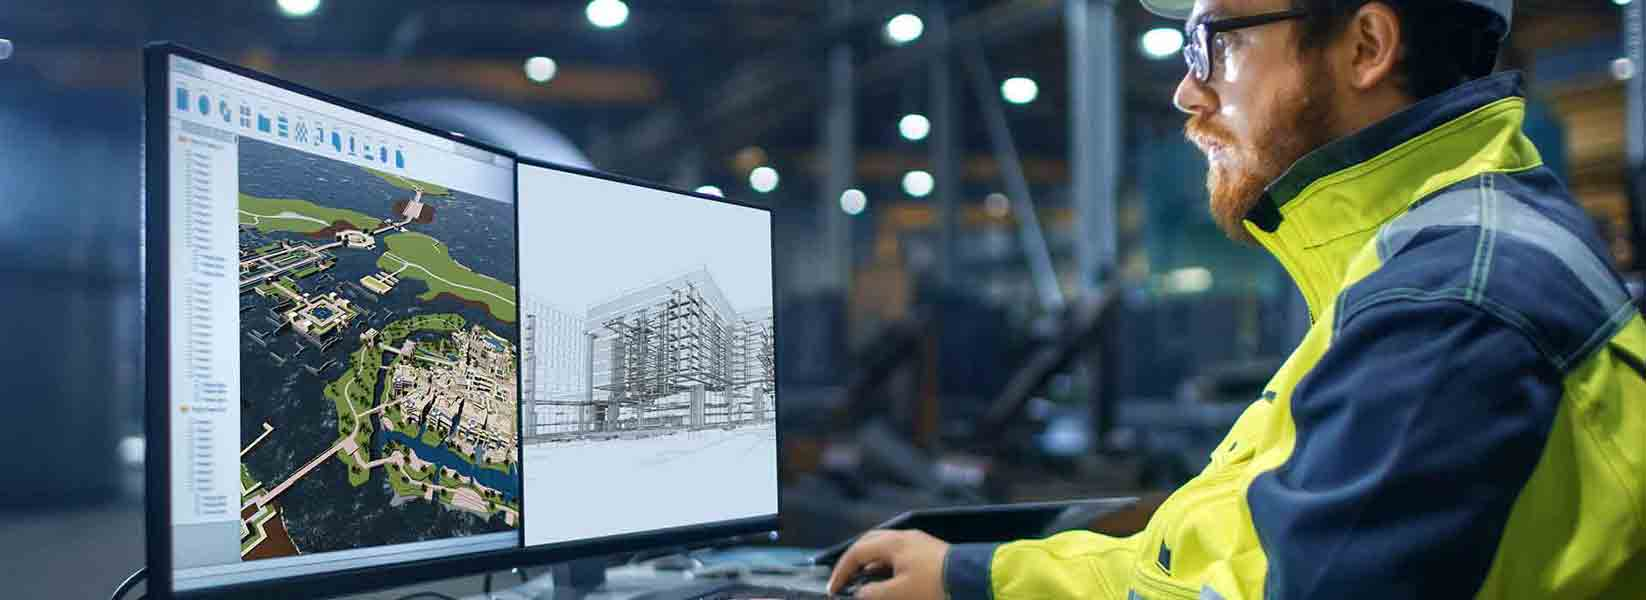 End-to-end digital engineering services across business verticals